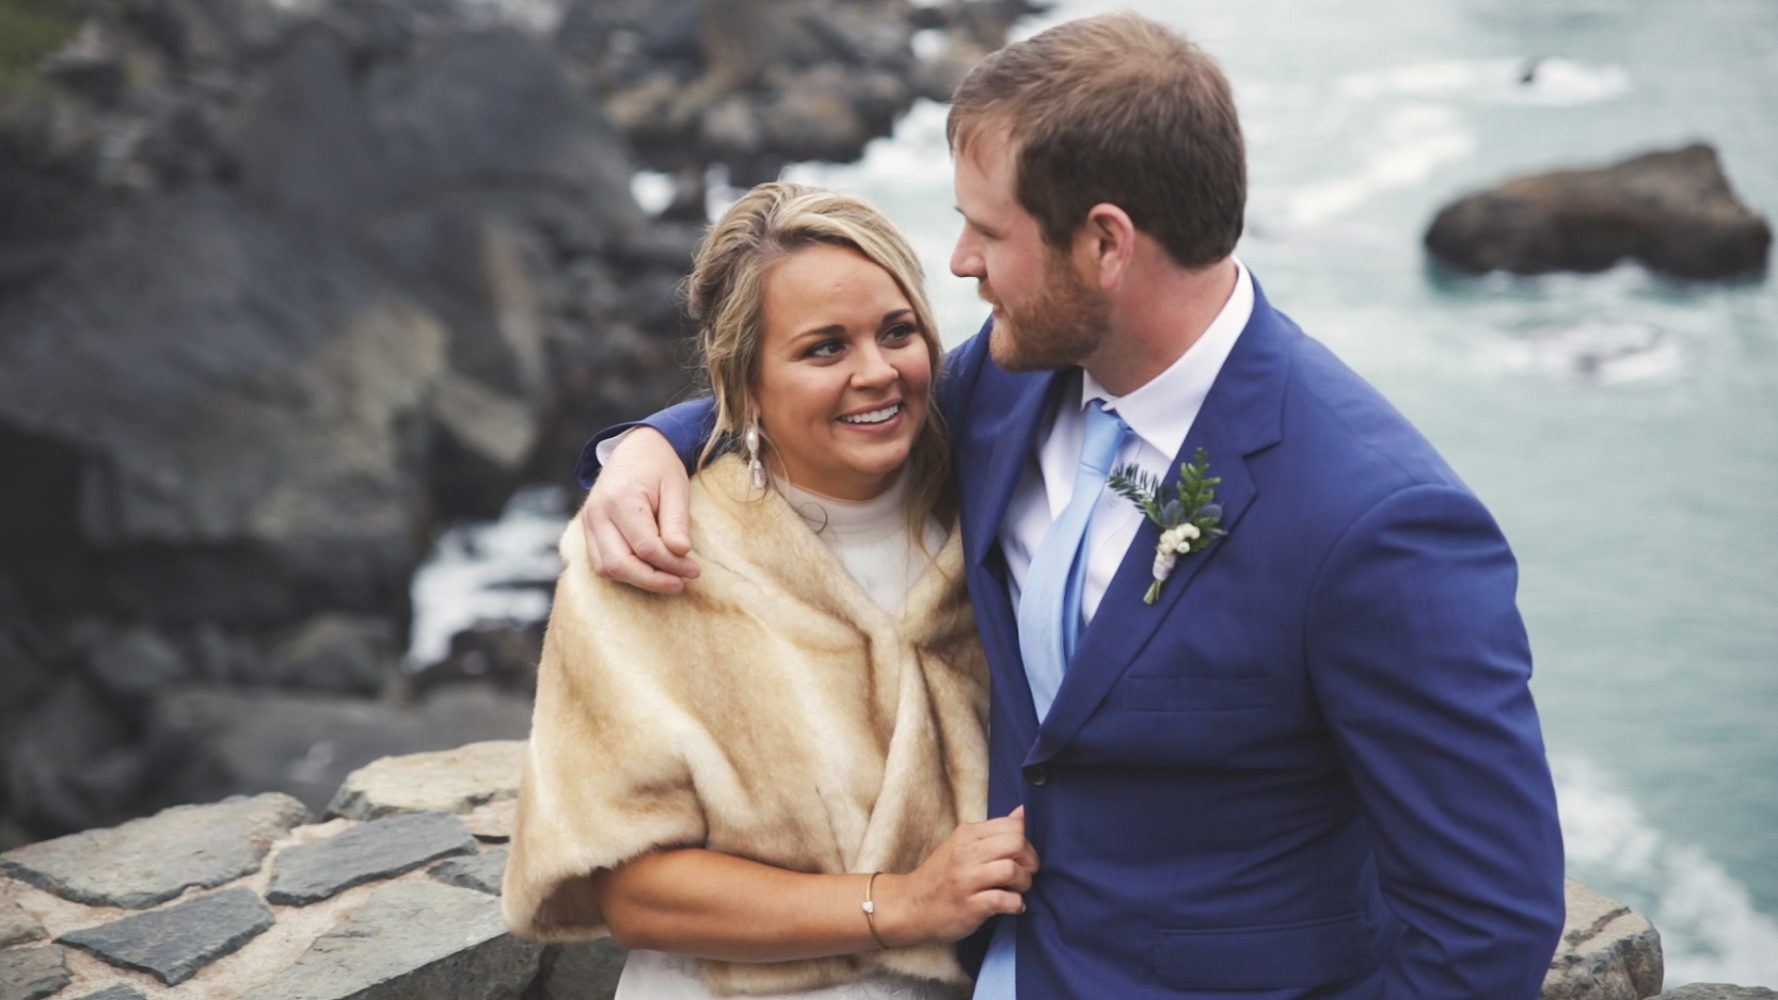 Virginia + Seth | Trinidad, California | The Redwoods